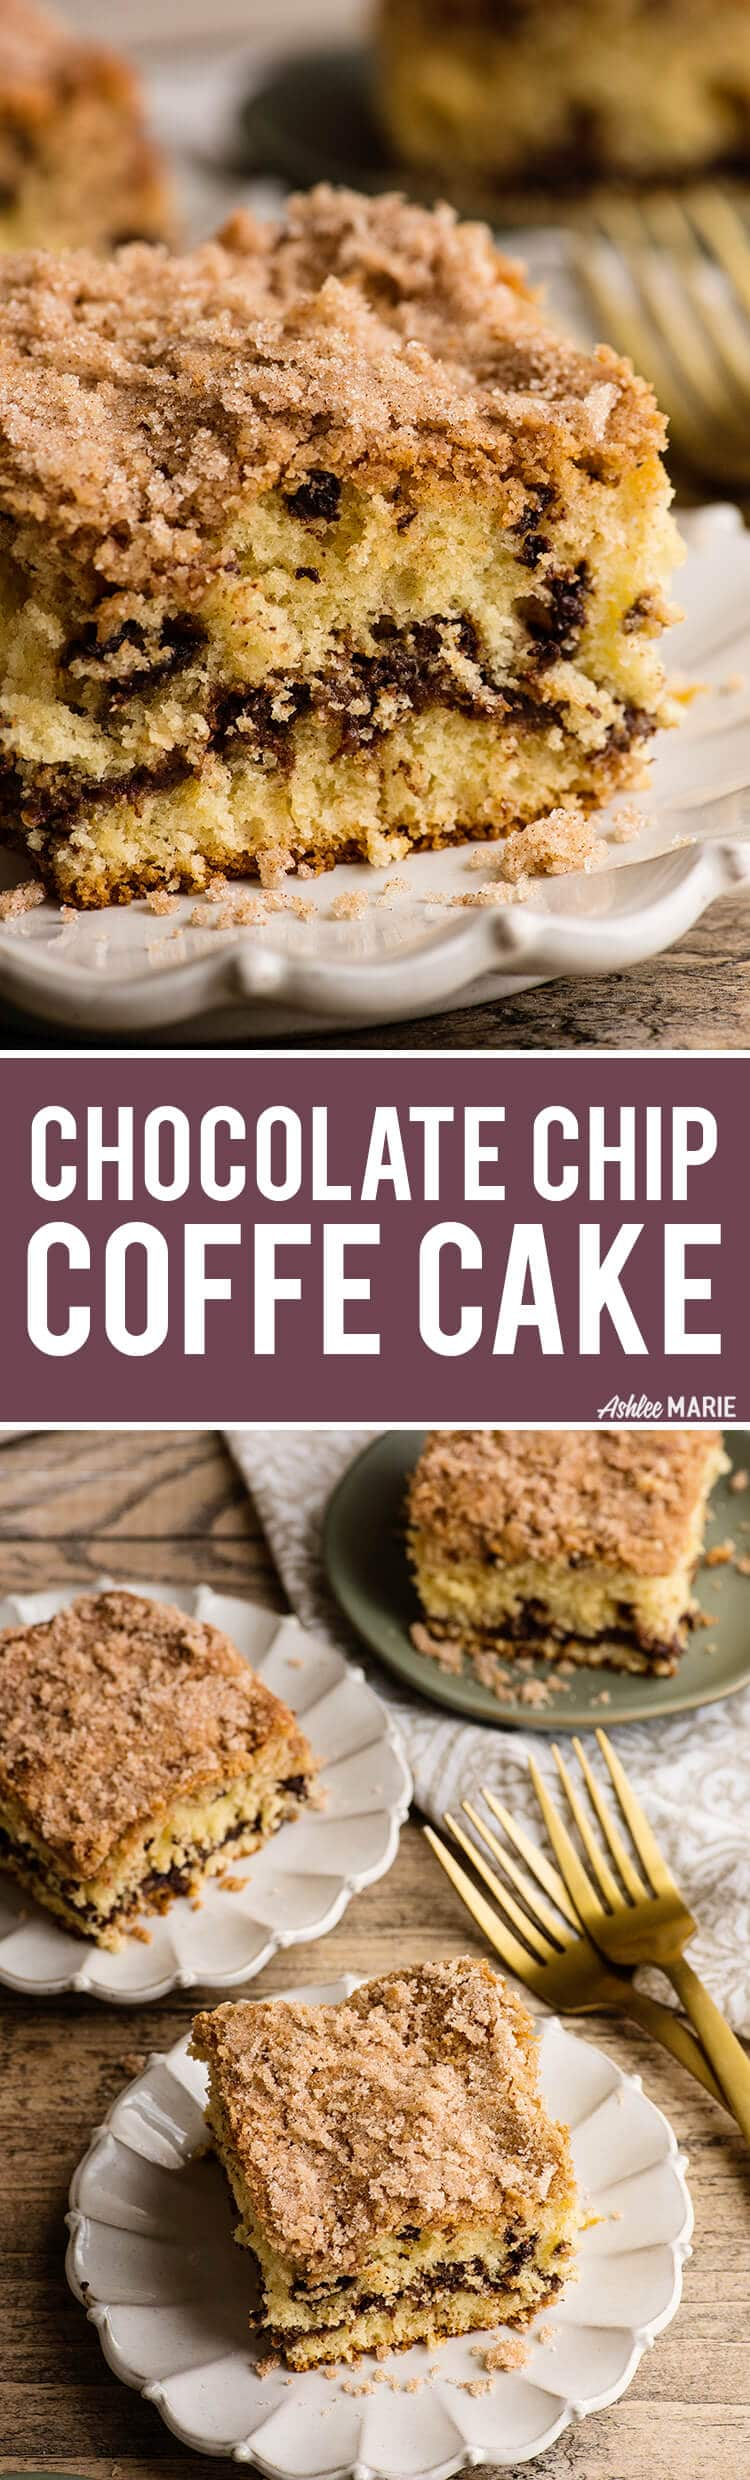 how to make chocolate chip sour cream coffee cake with streusel topping - video tutorial